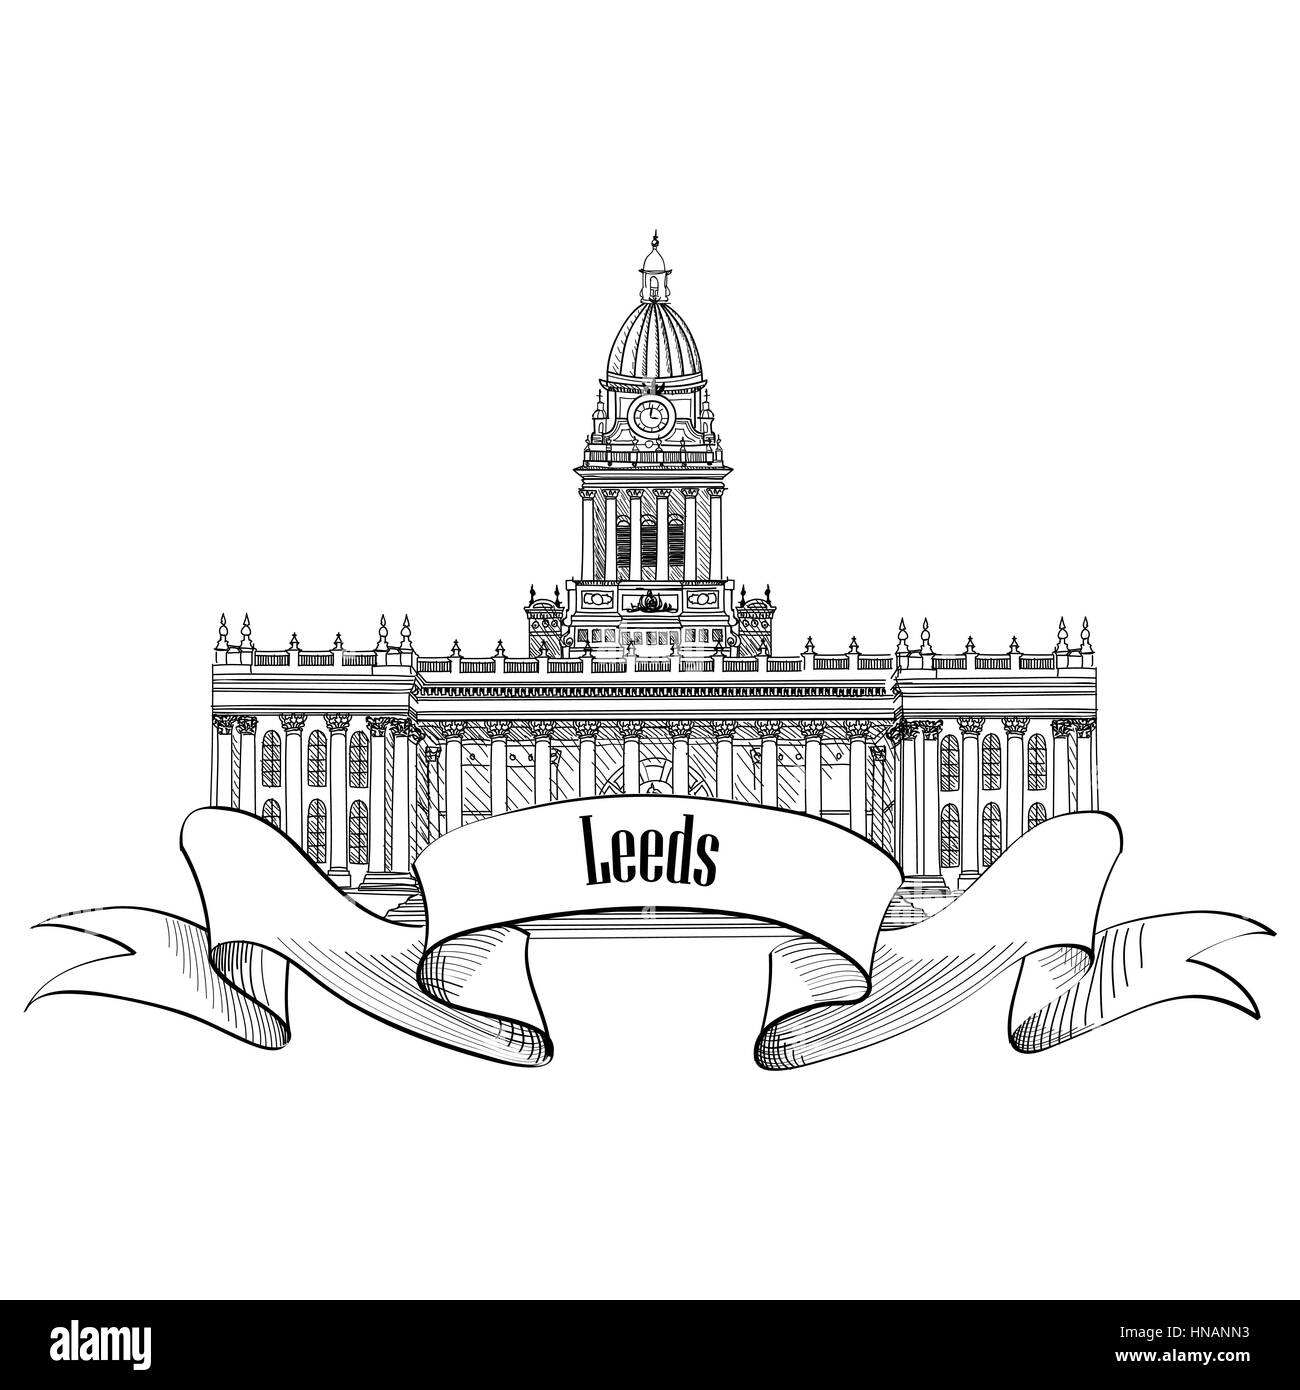 Travel England sign. Leeds Rathaus, UK, Great Britan. English city famous building. Vector label isolated. - Stock Image